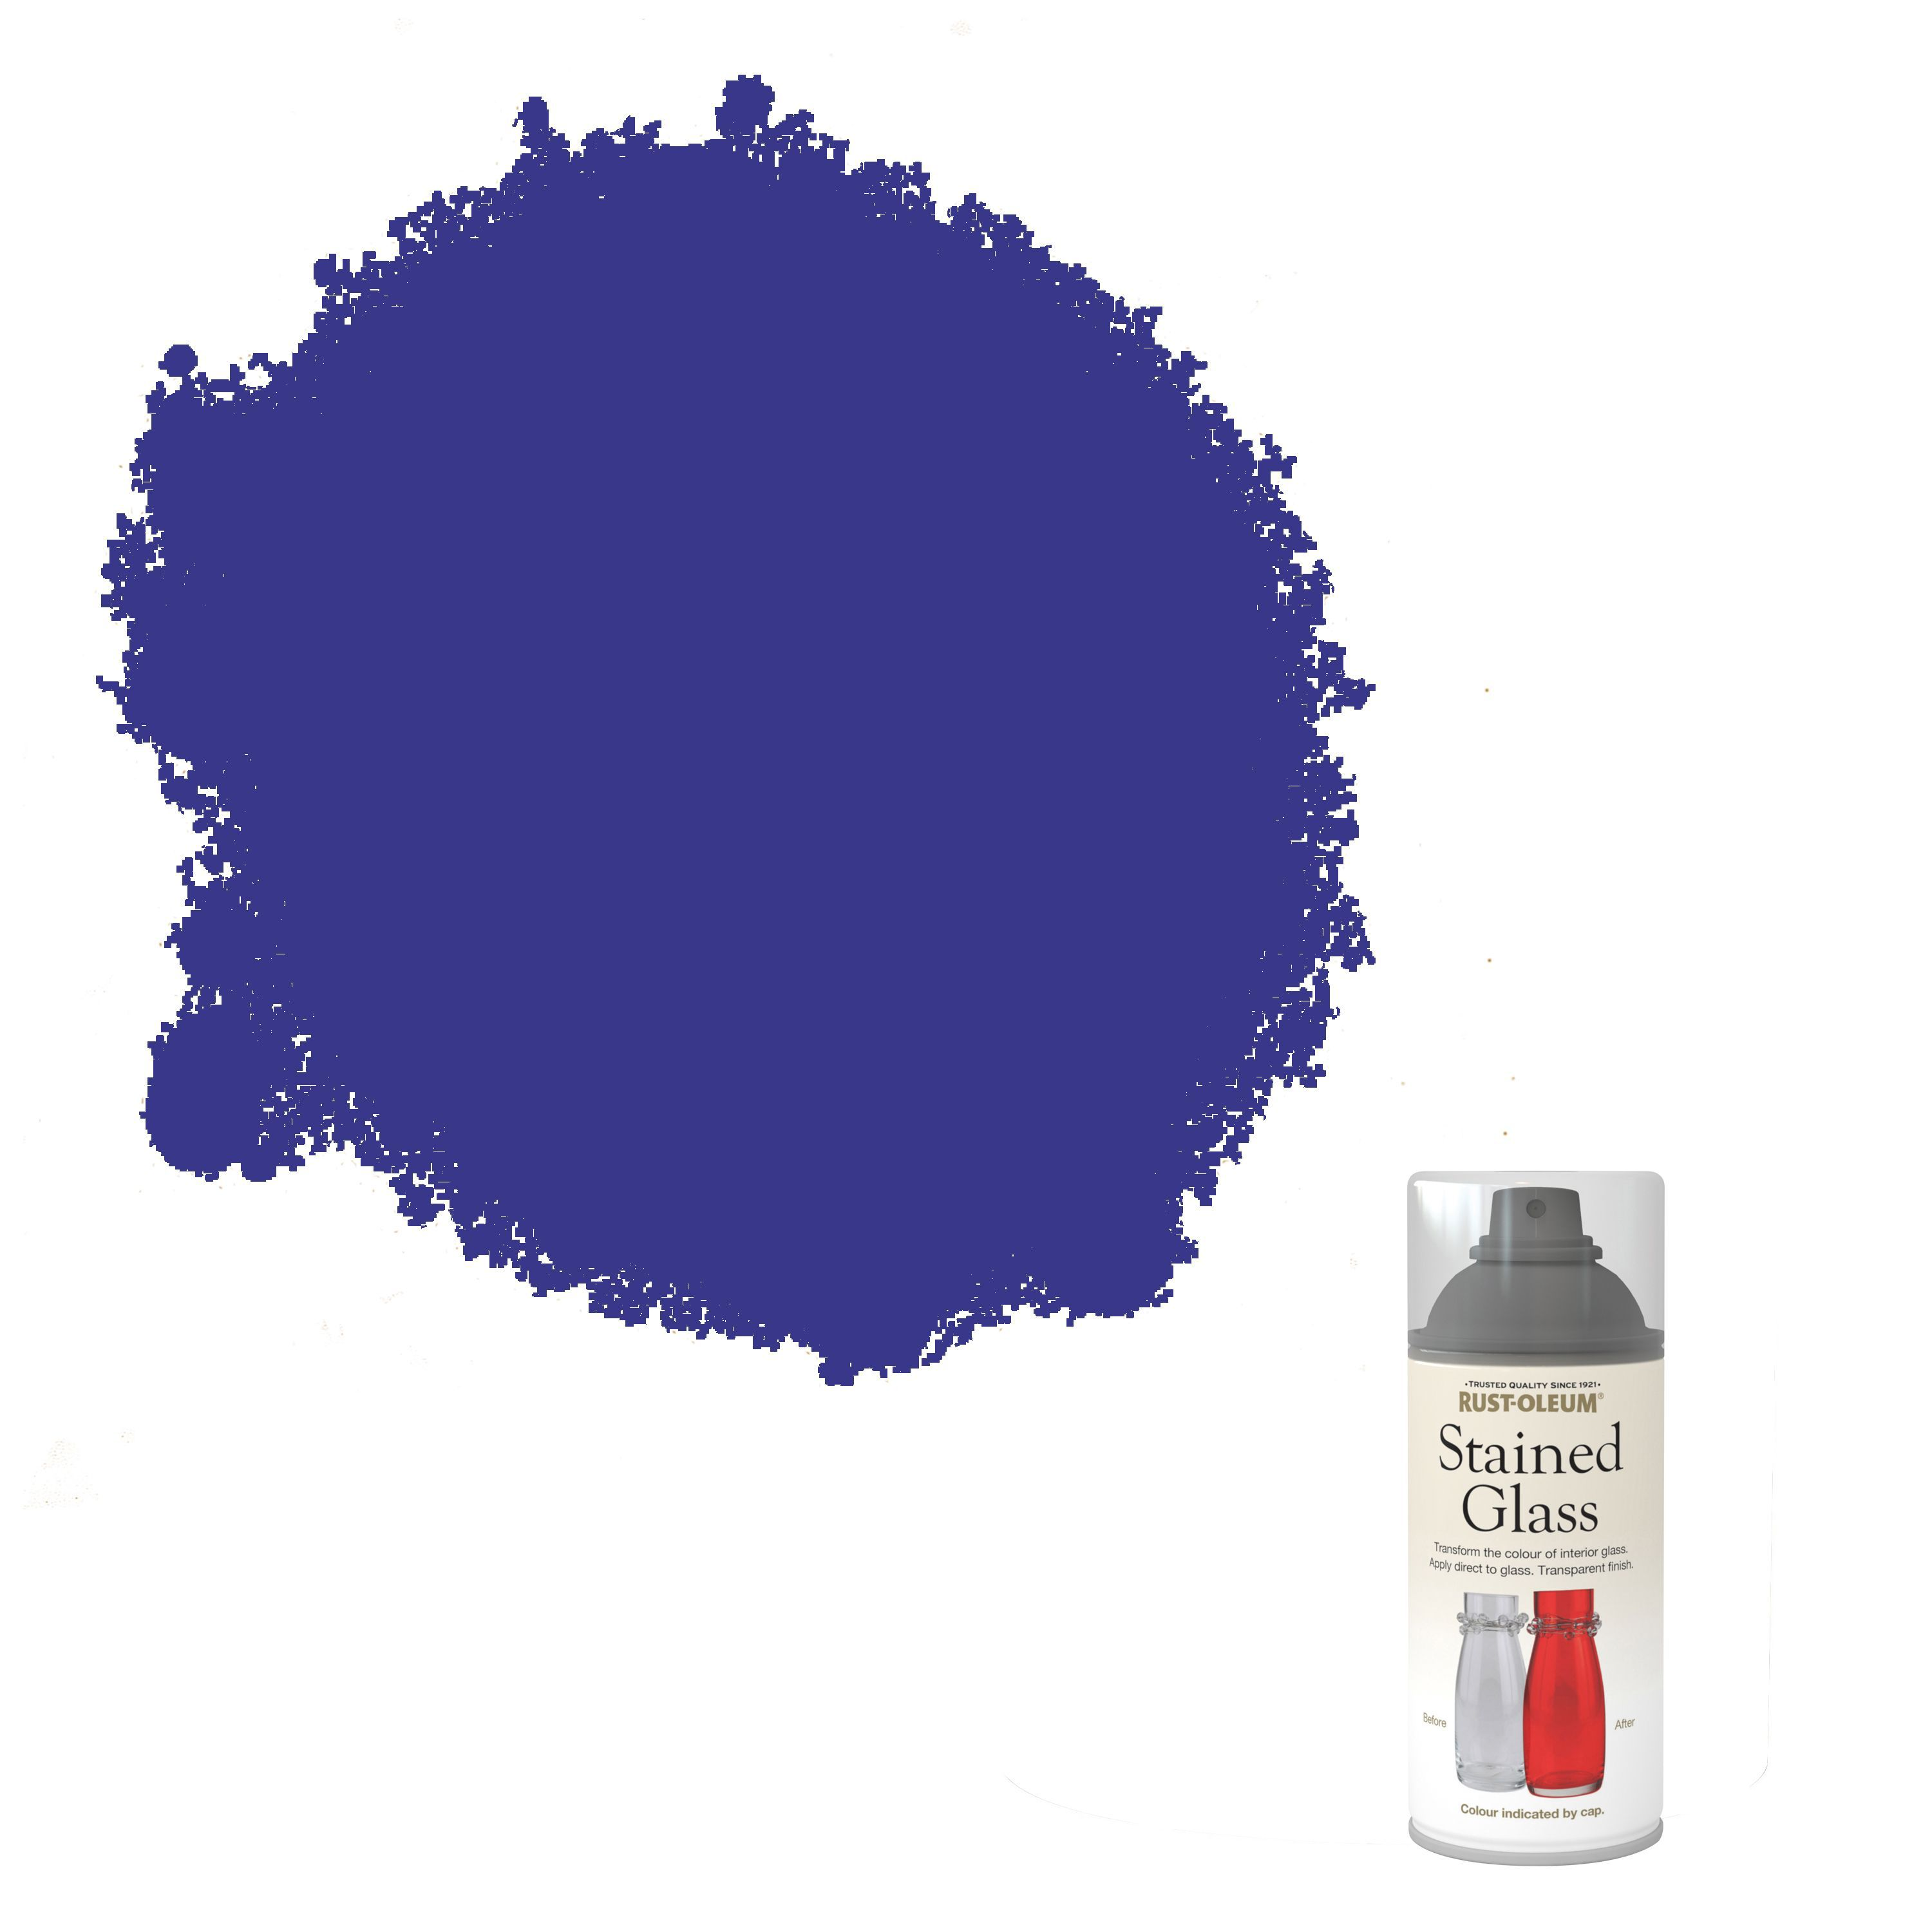 Rust-oleum Stained Glass Blue Satin Spray Paint 150 Ml